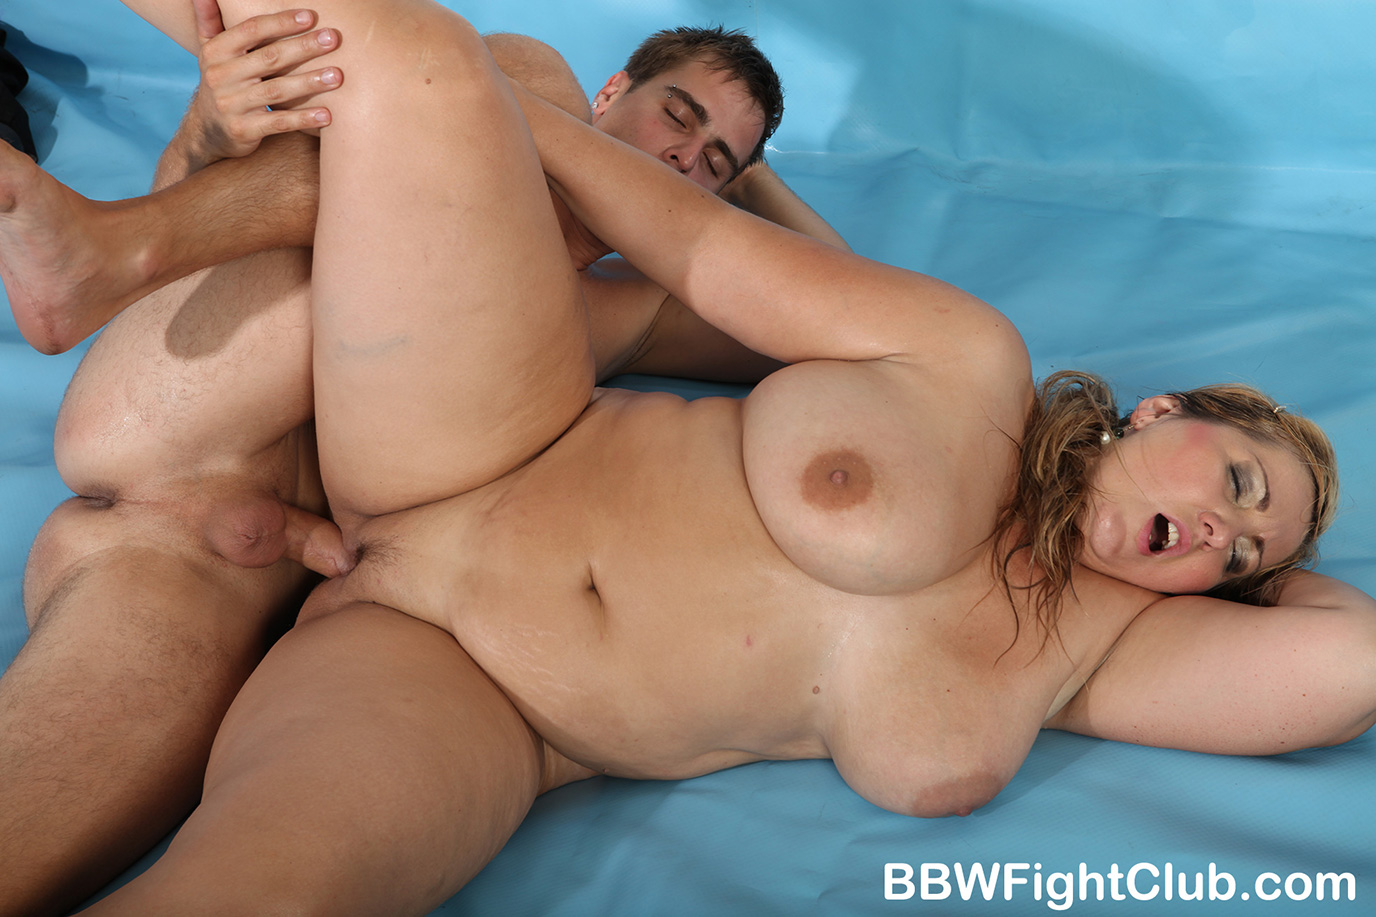 Chubby womens wrestling absurd situation